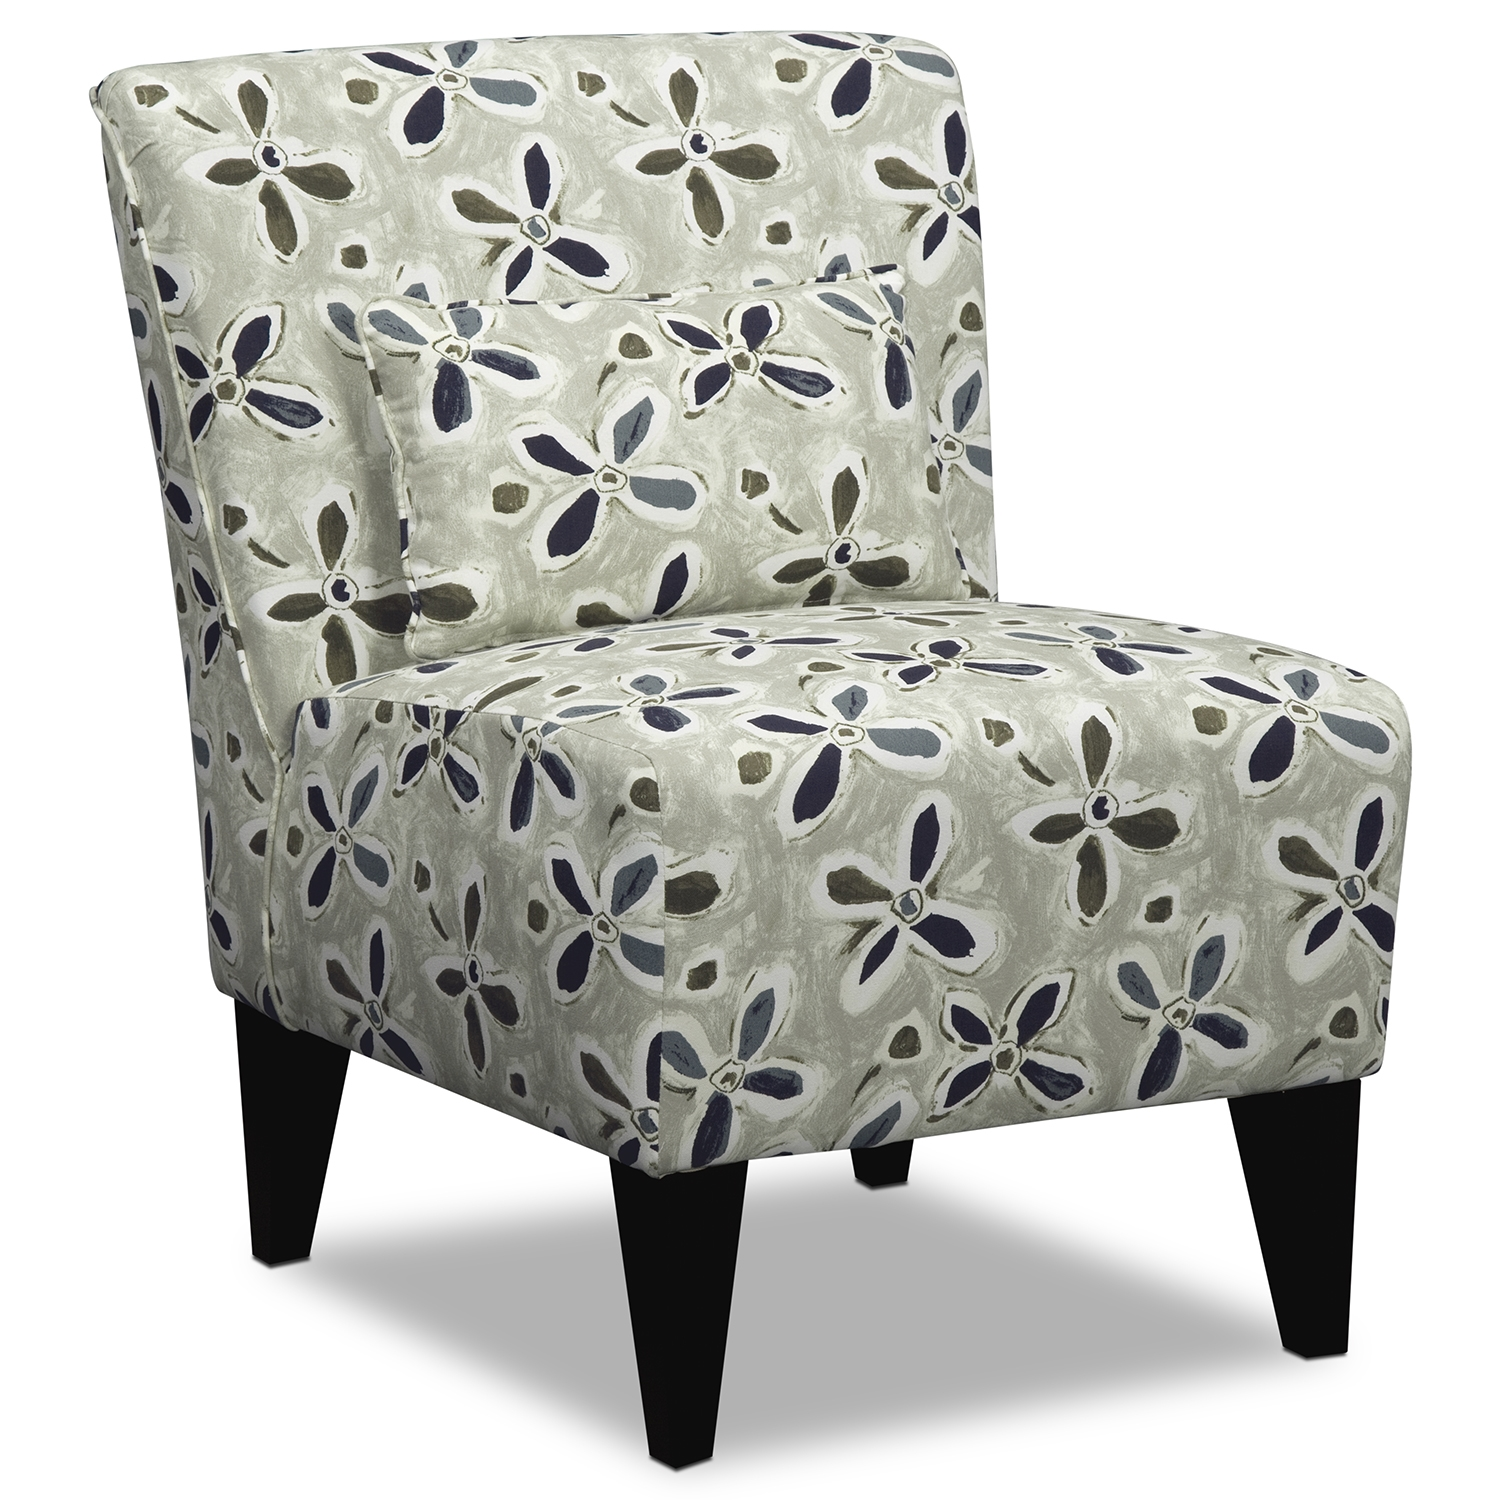 meadow upholstery accent chair value city furniture category livingroom inspiration chairs beautiful styles for living room ideas and tables home items sofa company target patio